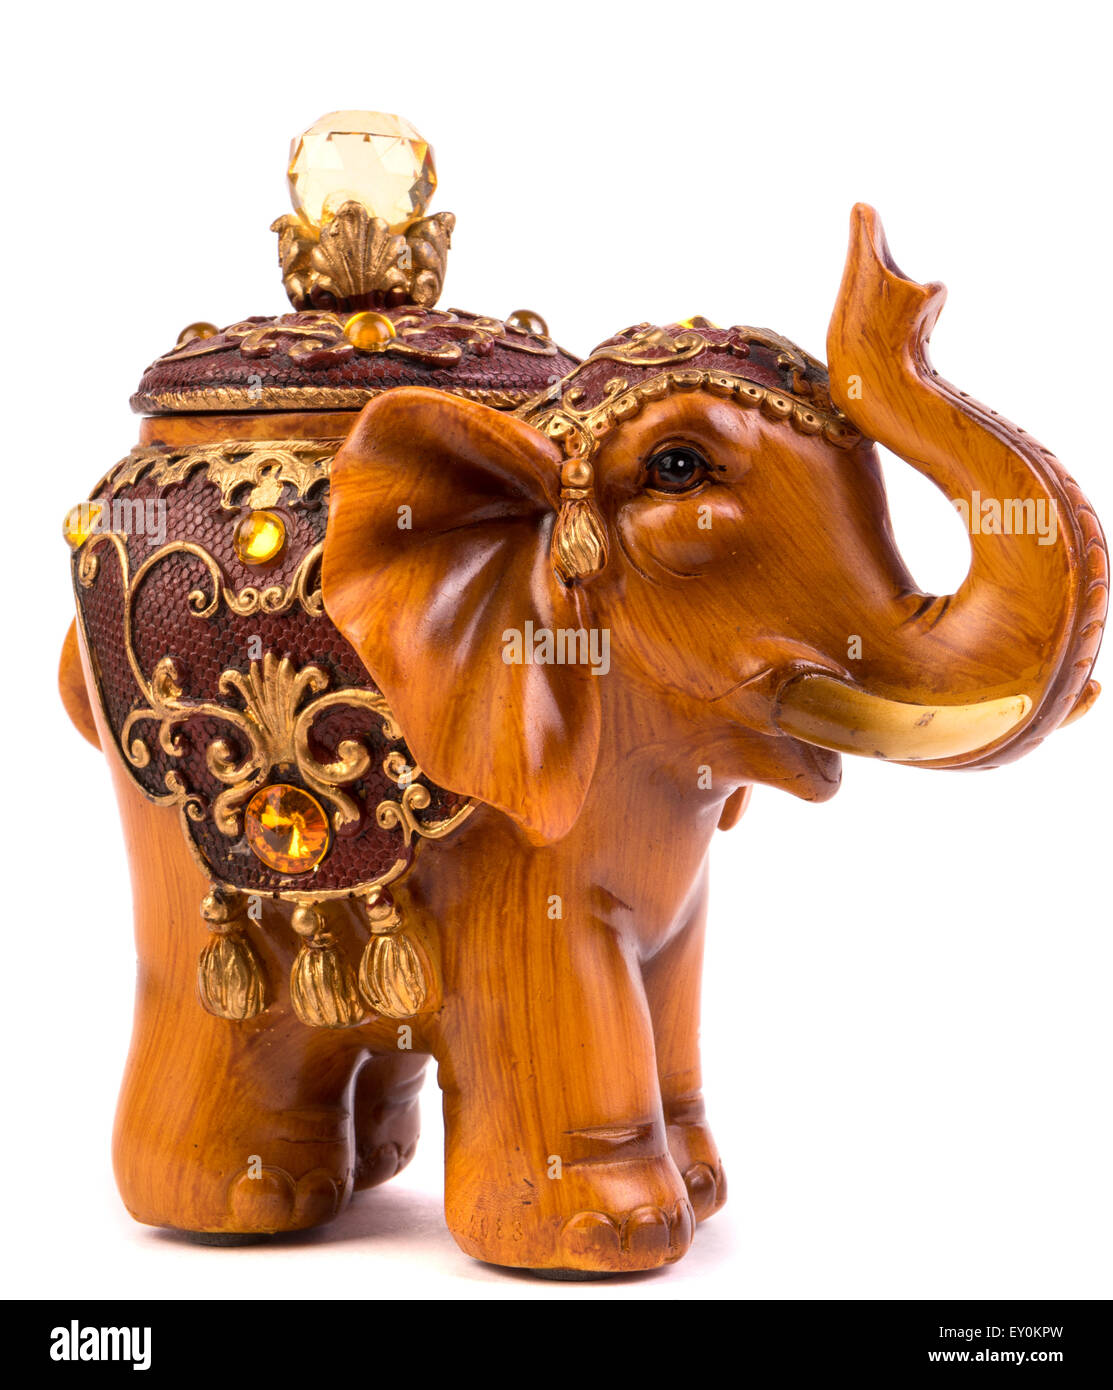 Wooden Elephants Figurines Wooden Elephant Figurine From Thailand Stock Photos